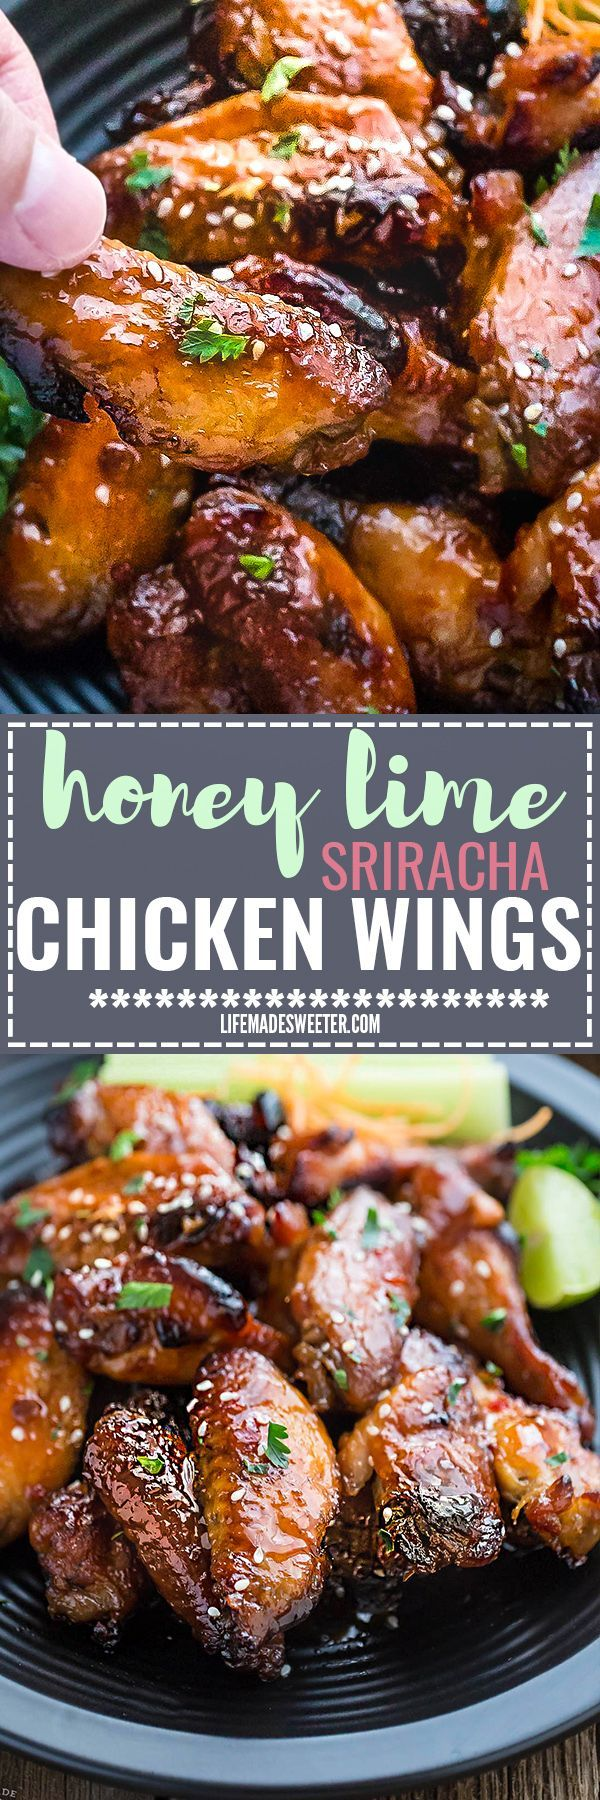 Slow Cooker or Oven Baked Honey Lime Sriracha Chicken Wings makes the perfect appetizers for game day. Best of all, they're so easy to make with a flavorful and delicious Asian inspired sticky sauce.